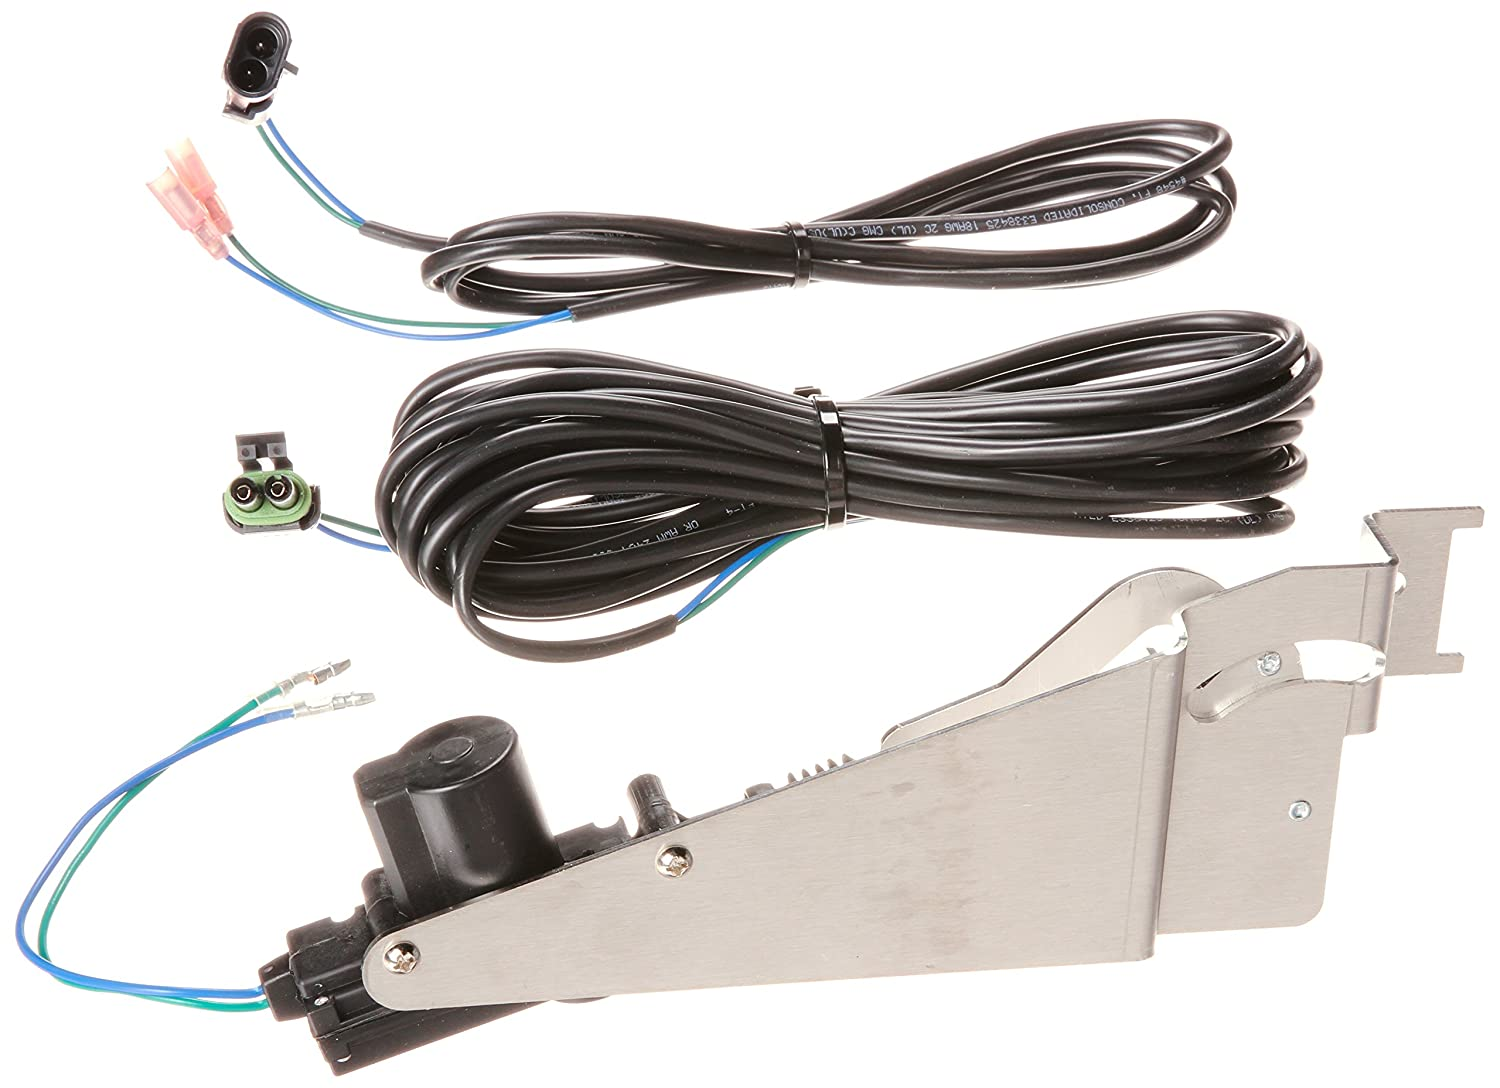 Amazon.com: Pop & Lock PL8250 Power Tailgate Lock for Ford (For ...